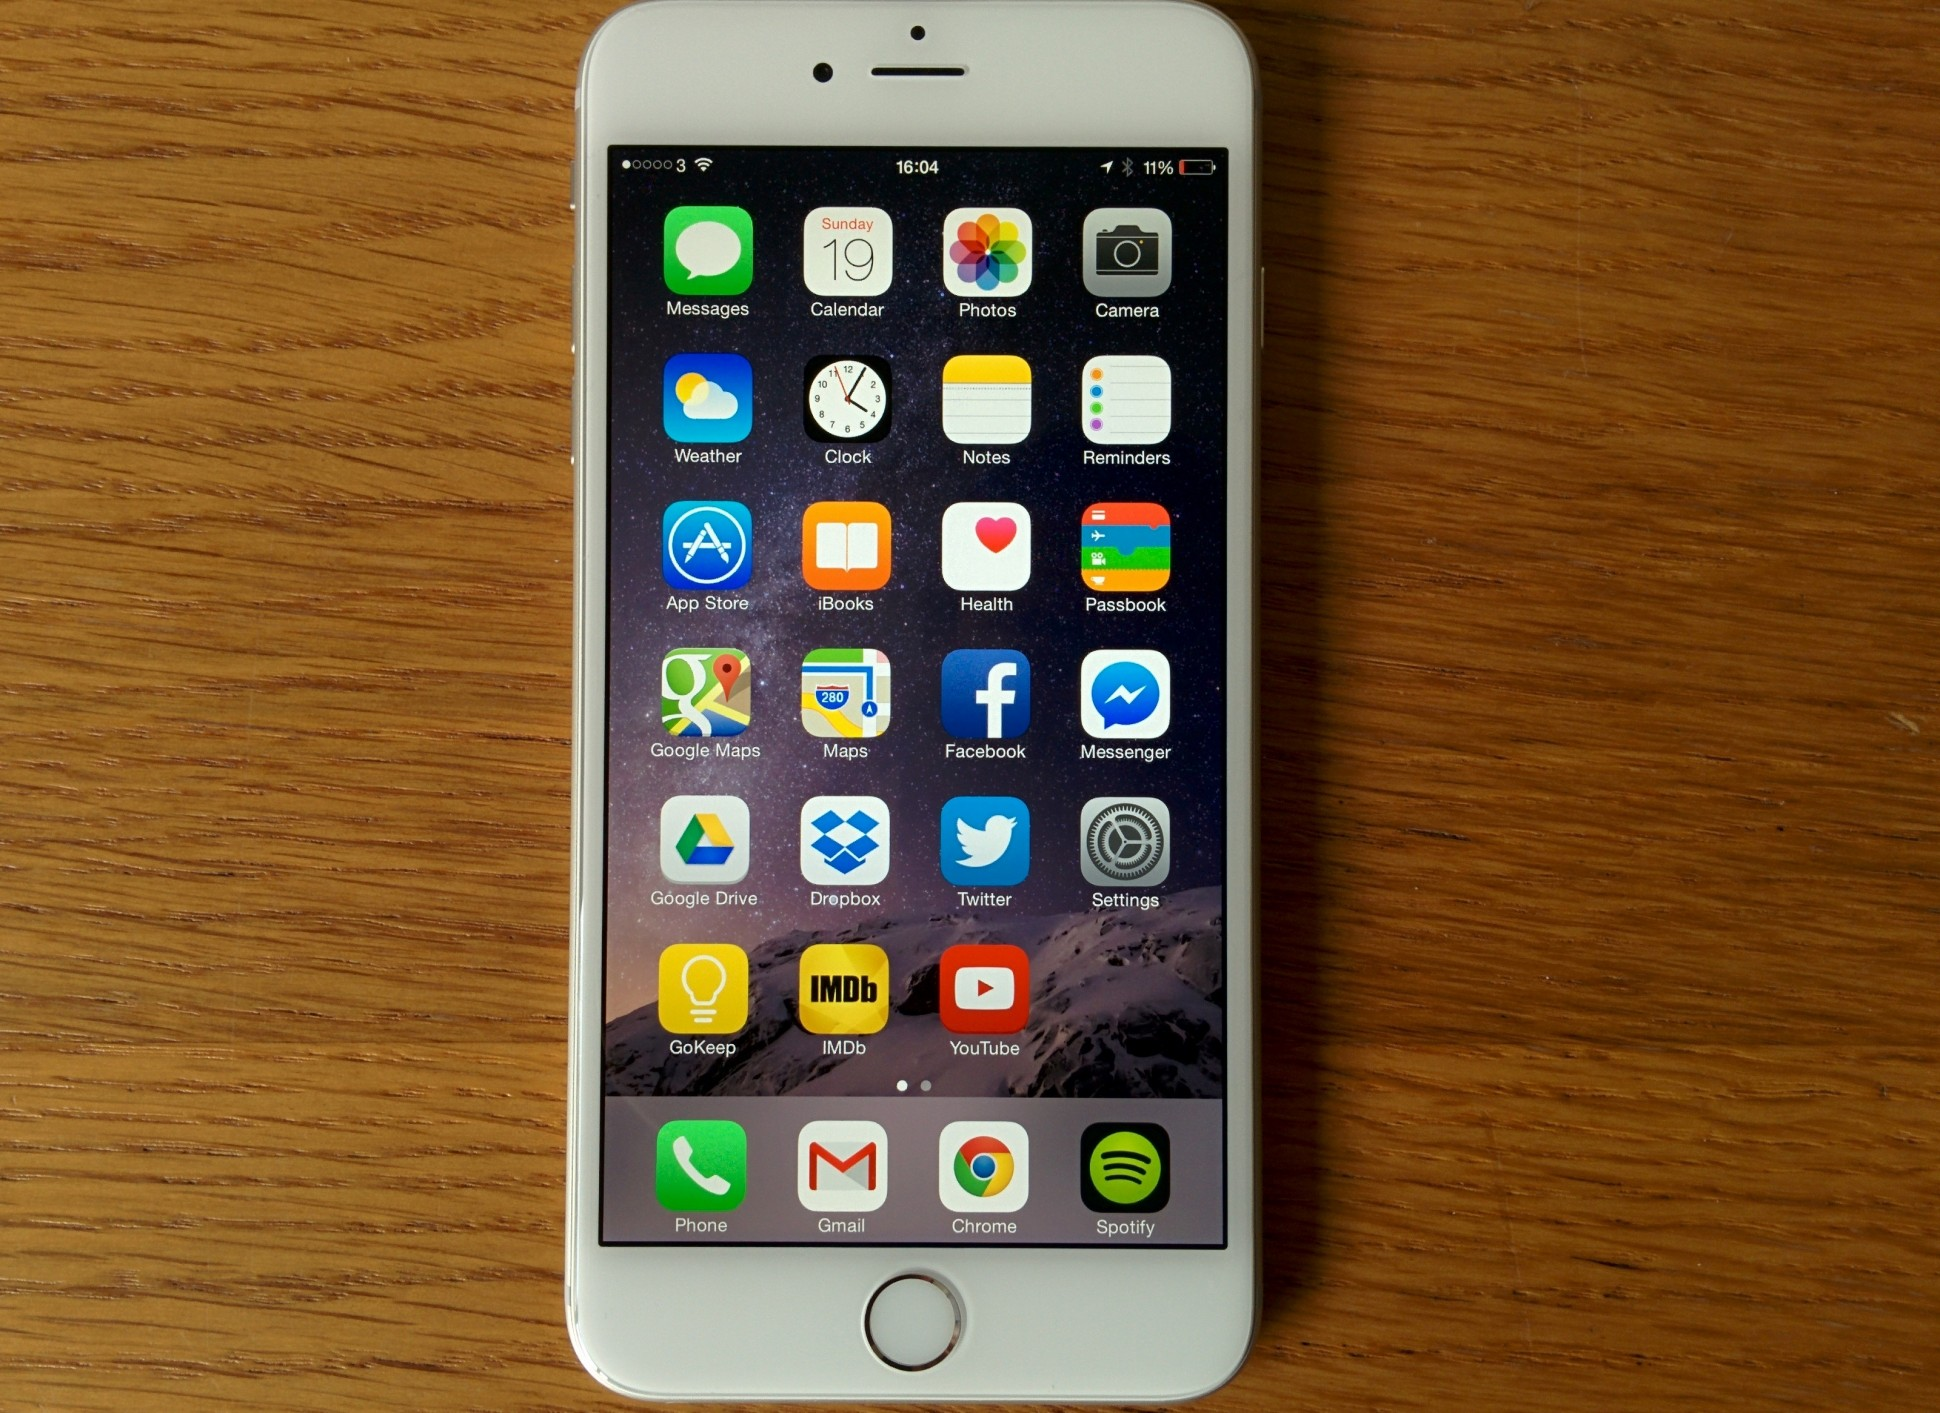 Release of new iPhone 6s and 6s Plus wows students